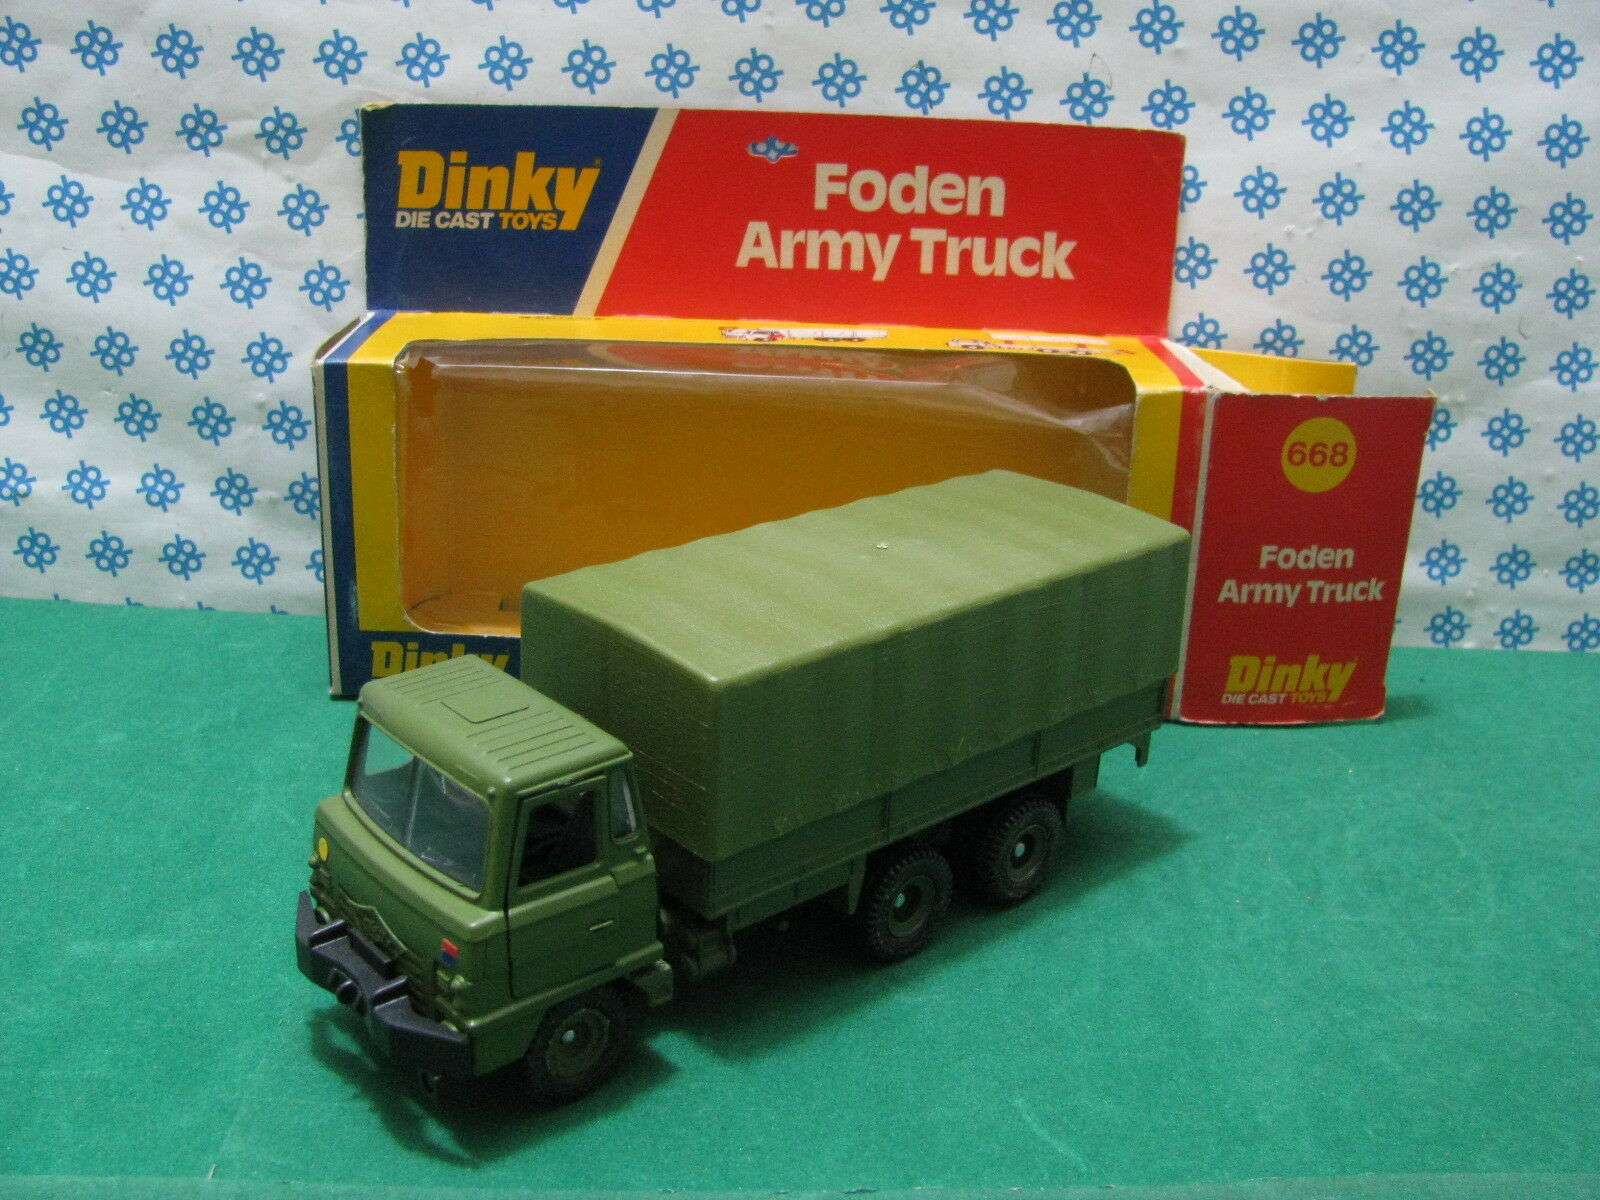 FODEN  ARMY  TRUCK     -   Dinky  Supertoys  668    Mint in Box